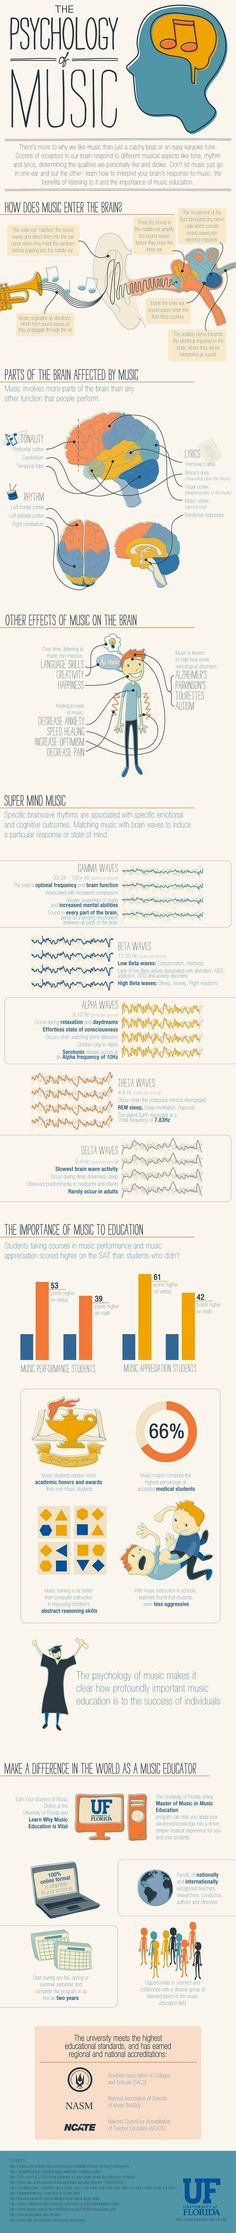 A Wonderful Graphic Featuring The Importance of Music in Education ~ Educational Technology and Mobile Learning